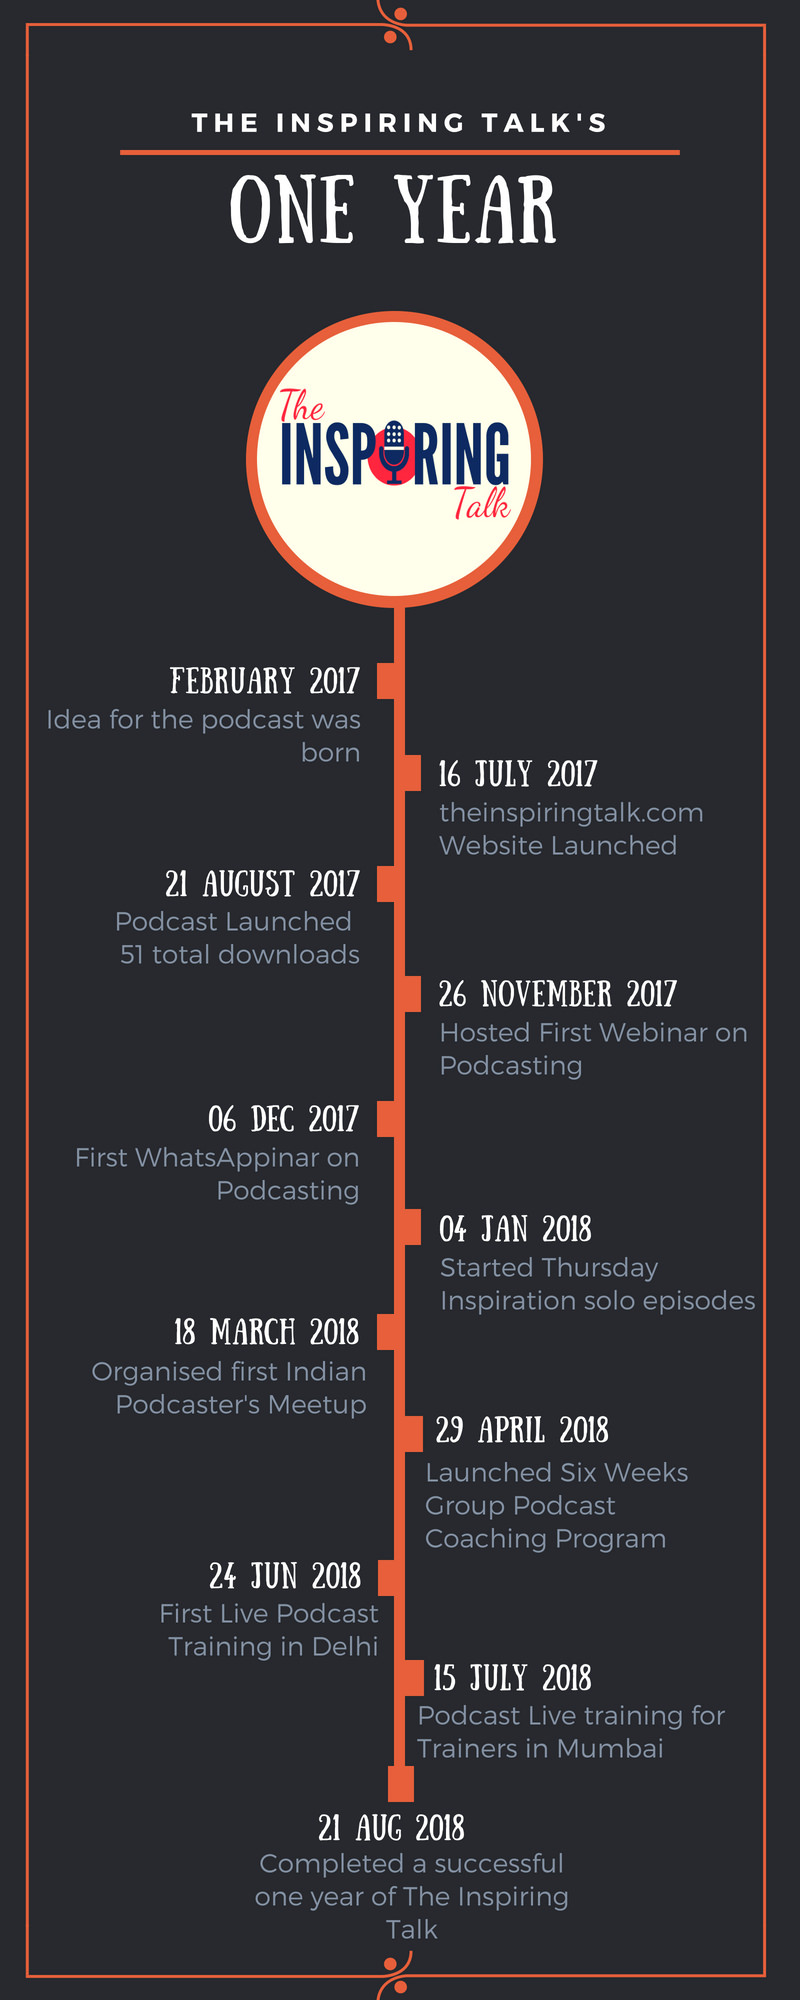 the inspiring talk's one year journey- Infographic